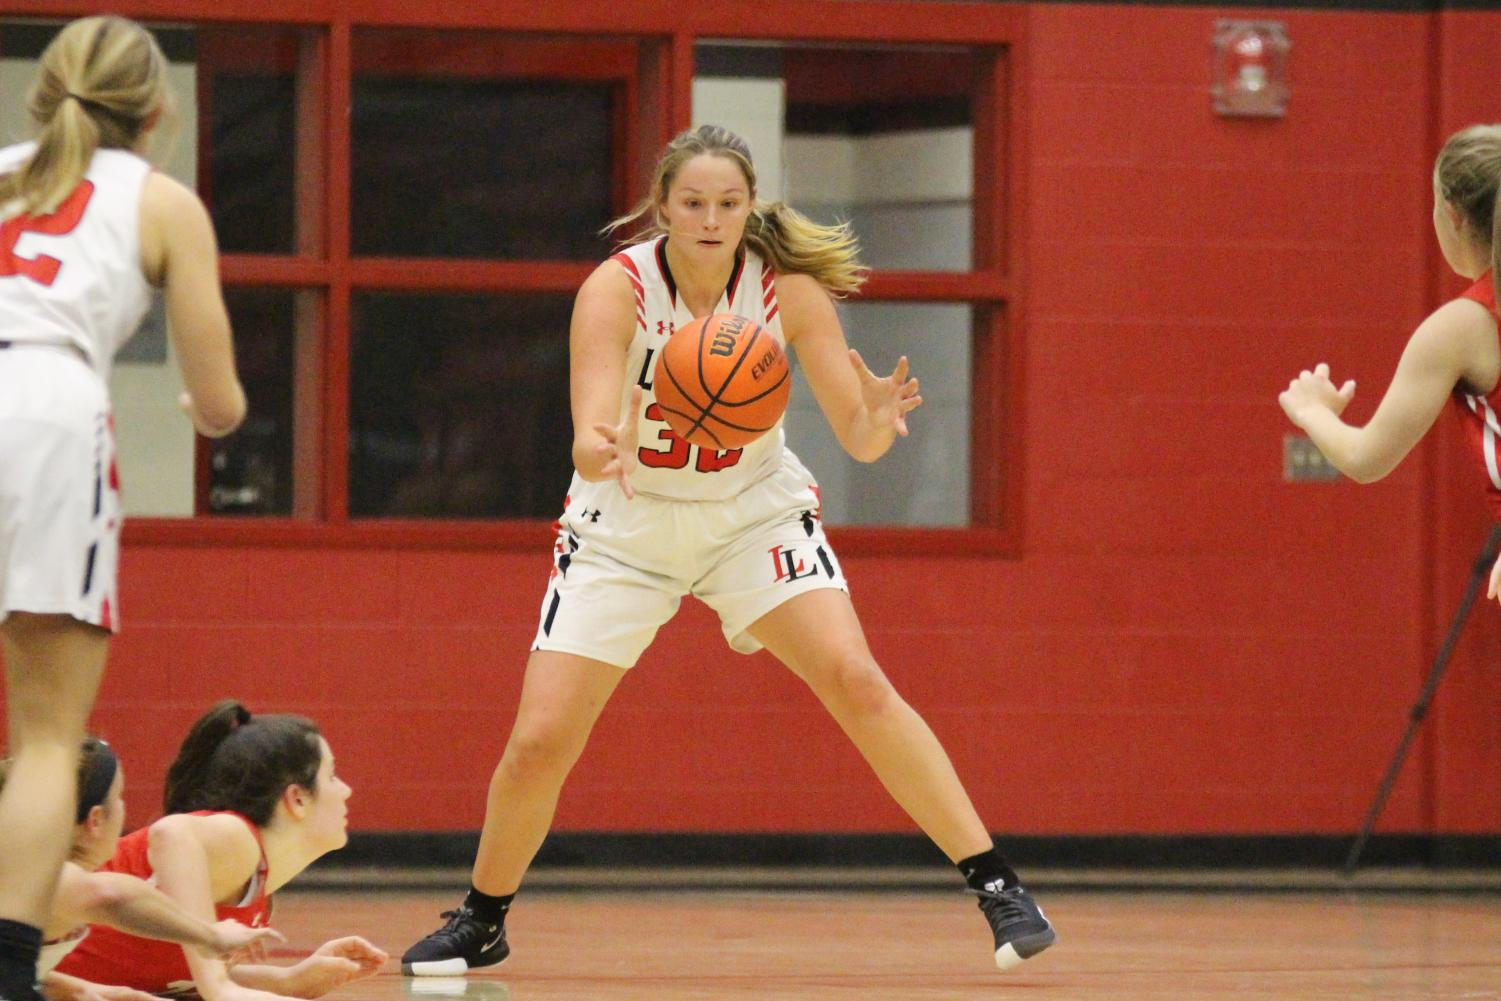 Senior Addison Hand grabs the basketball after junior Julia Brochu tosses the ball up to her.